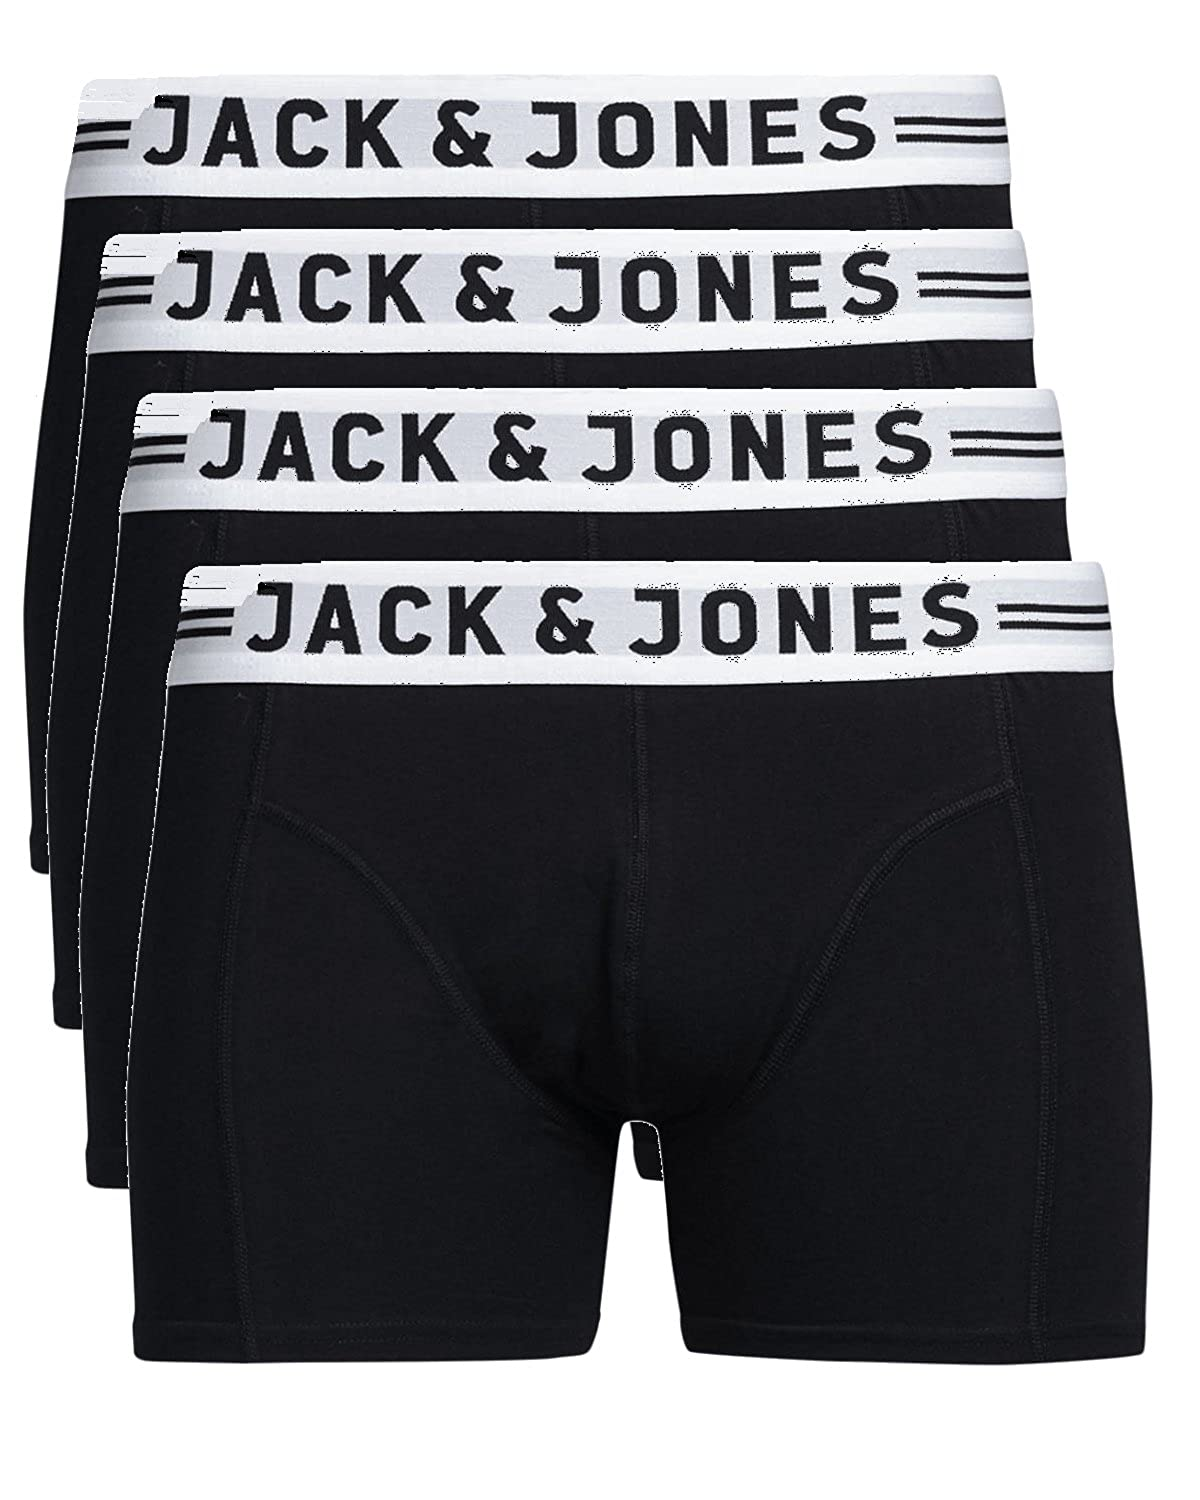 Jack & Jones trunks, pack of 4, Sense boxer shorts, underwear S, M, XL, XXL 12